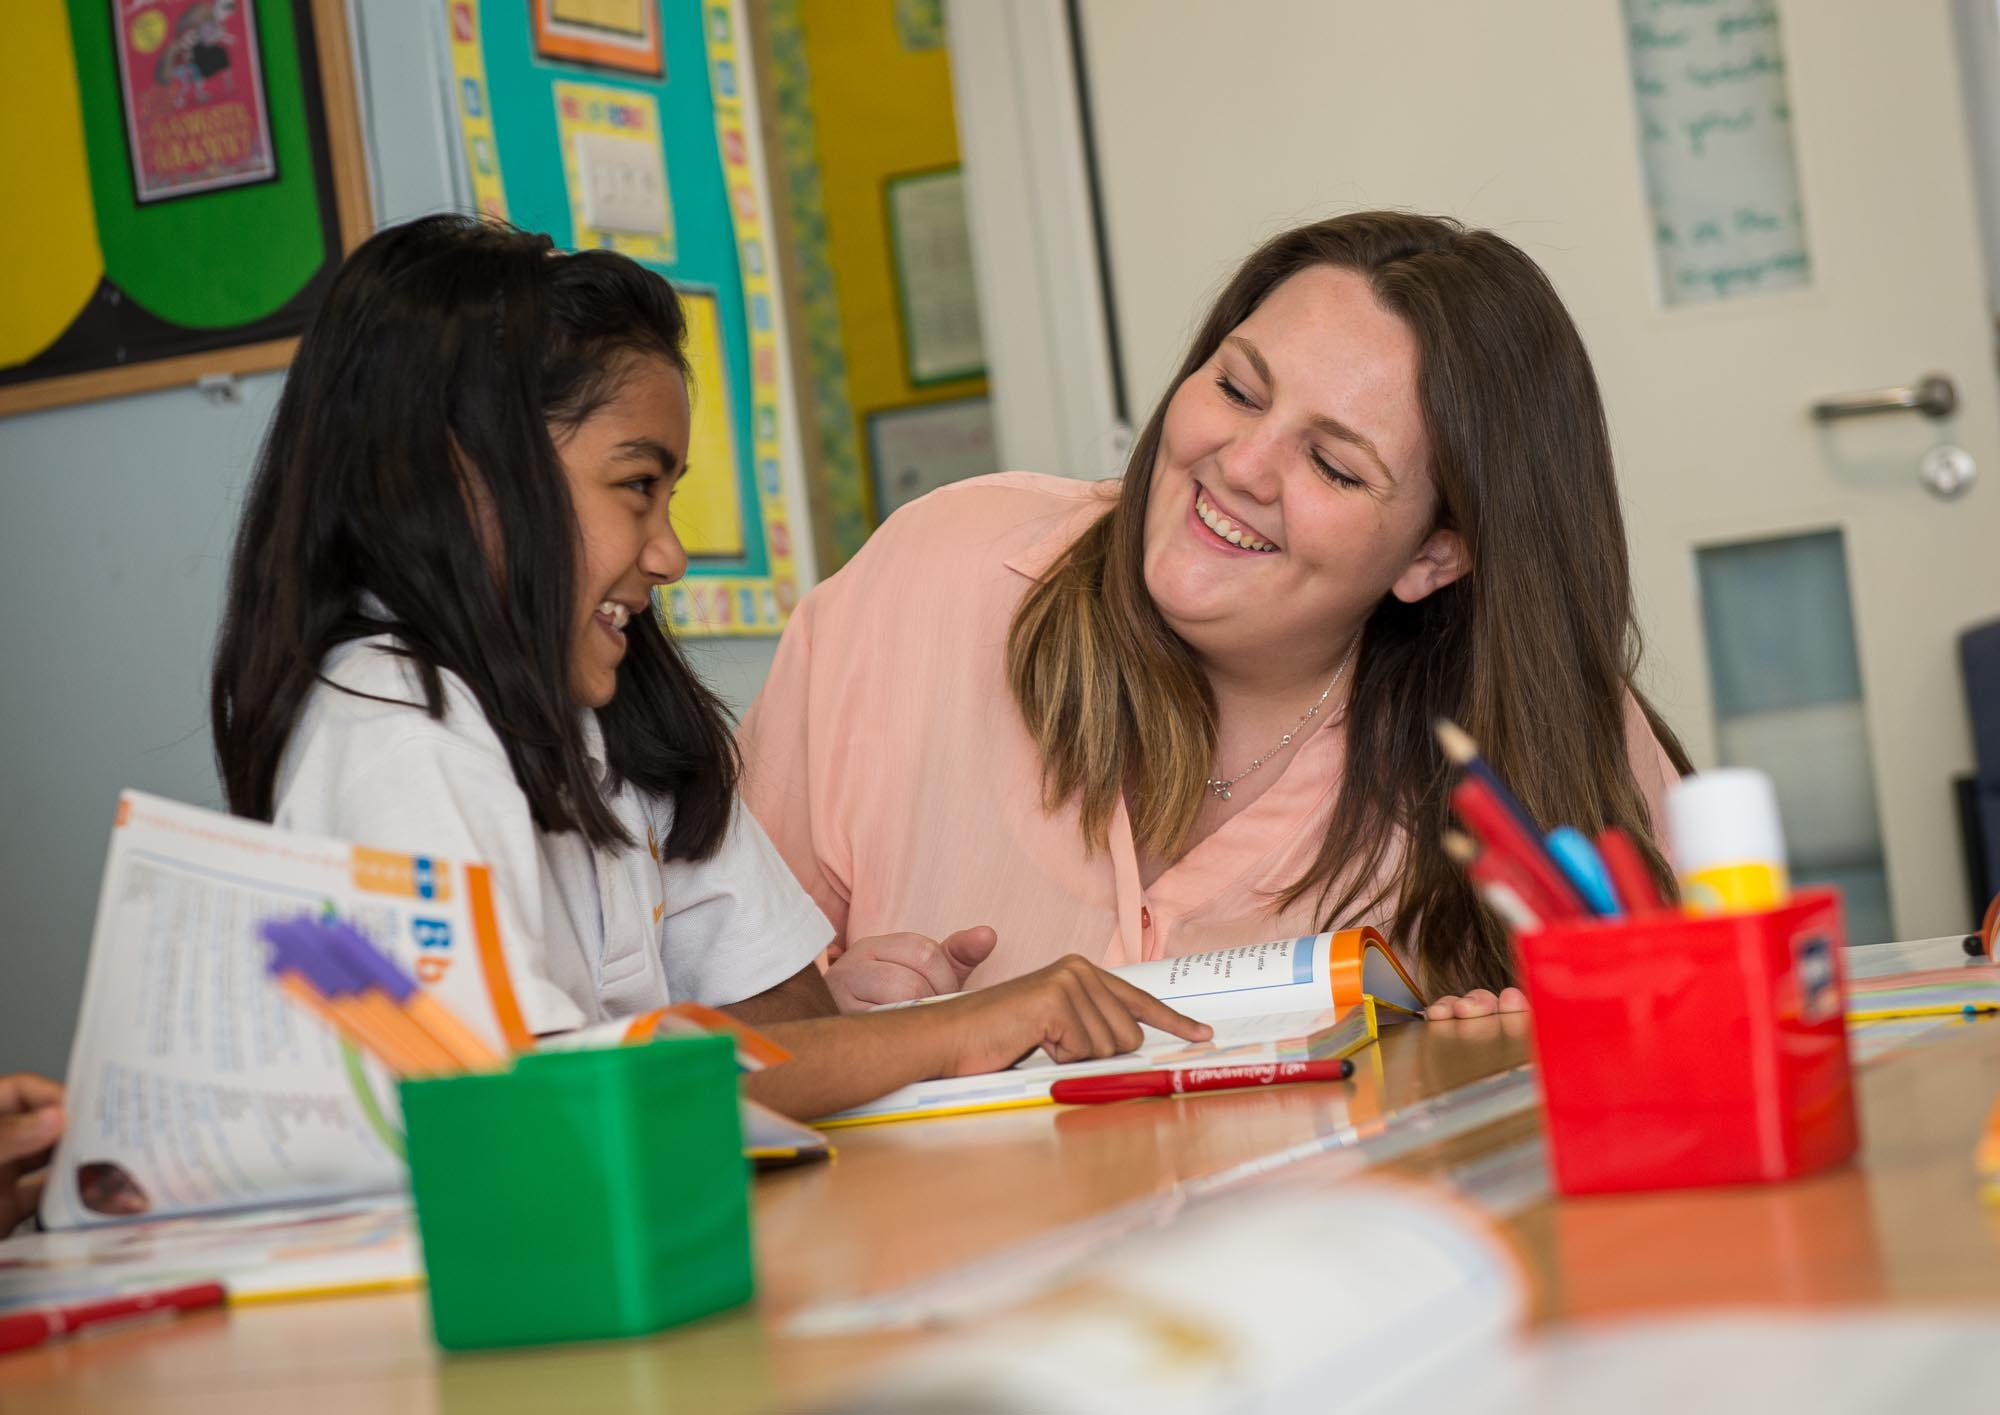 Teacher and pupil laughing